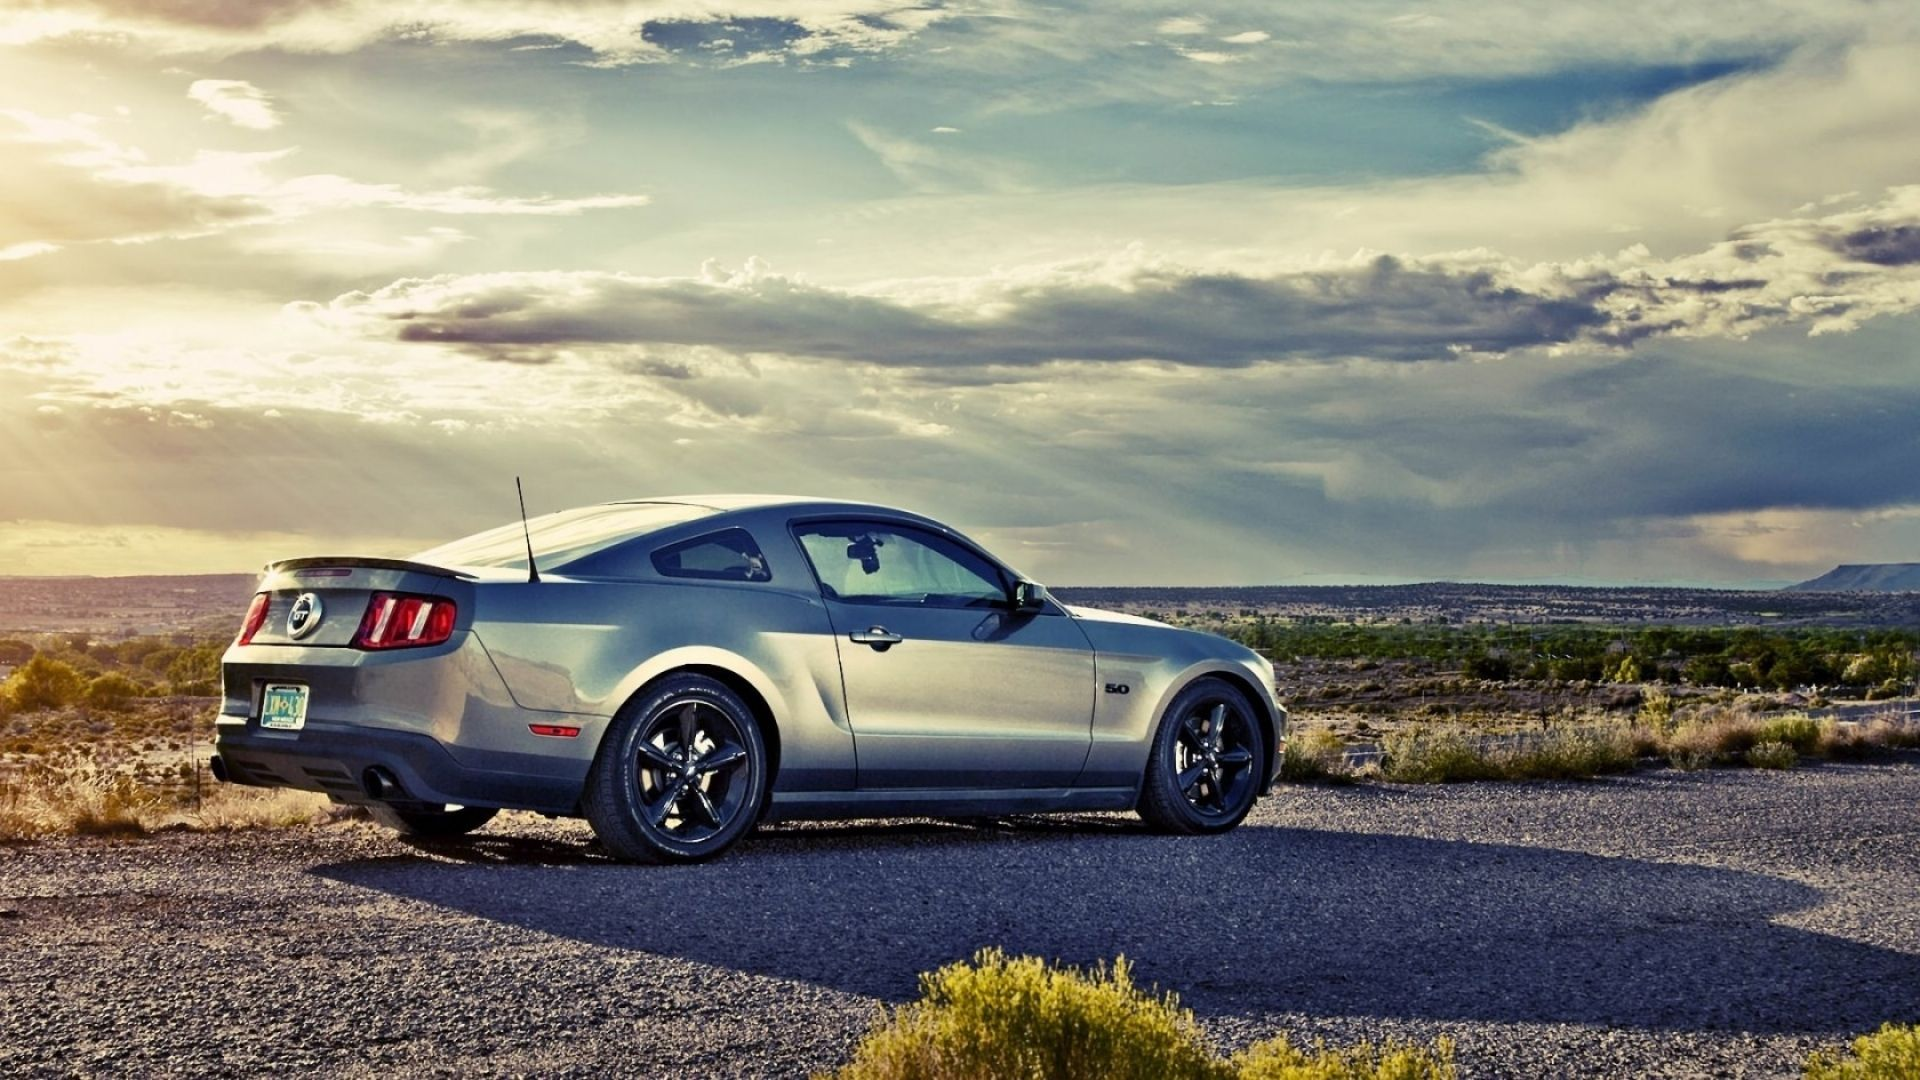 Mustang Wallpaper Desktop Vmt Cars Pinterest Wallpaper Hd